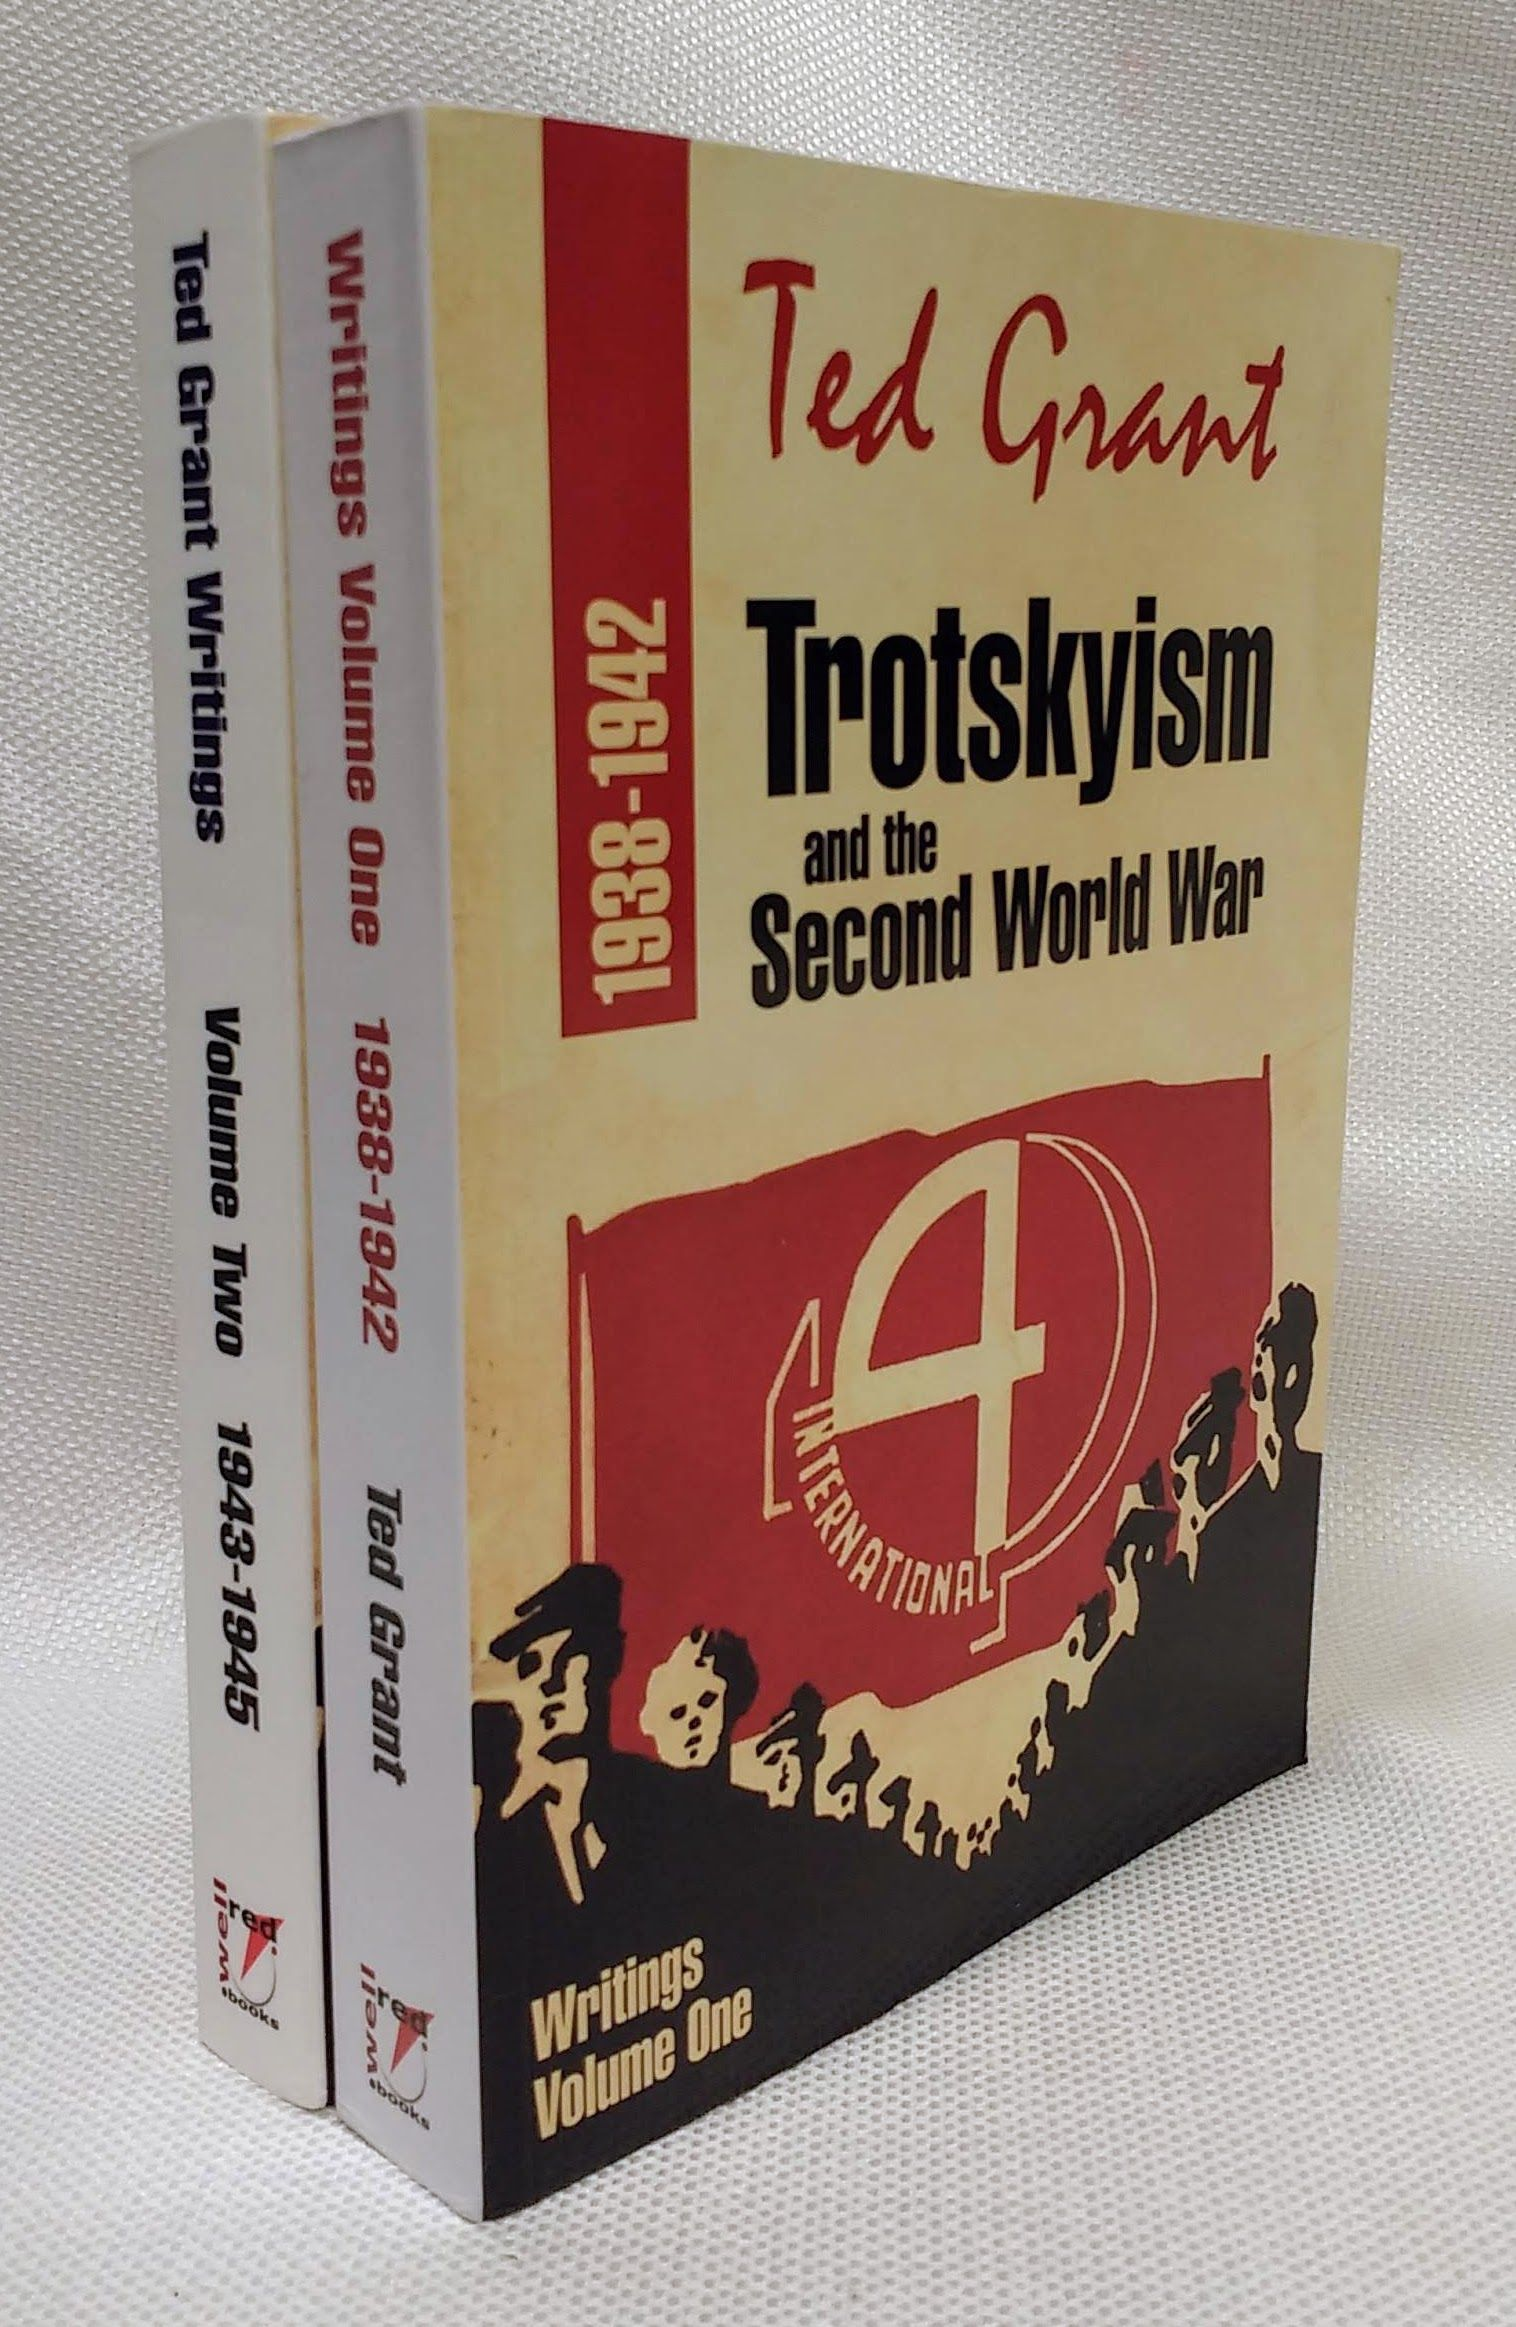 Trotskyism and the Second World War 1938-1942; Trotskyism and the Second World War 1943-1945 (Writings Vols. One & Two), Grant, Ted